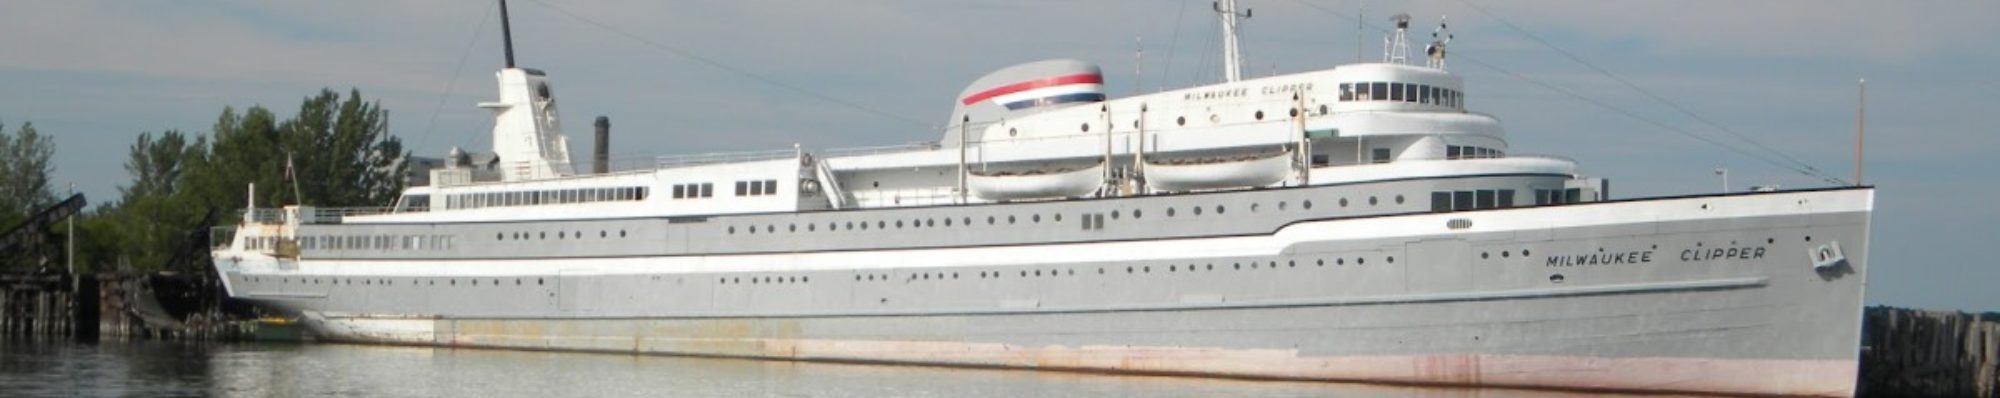 S.S. MILWAUKEE CLIPPER